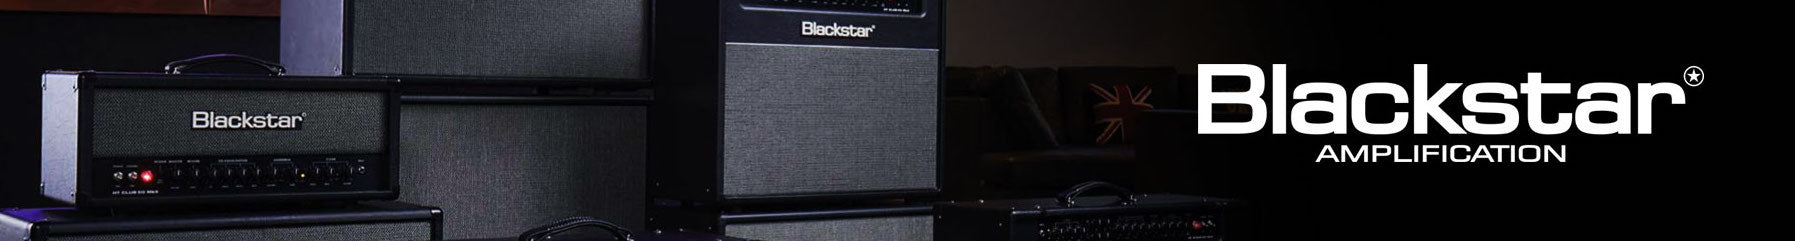 Blackstar Amps at Music Junkie